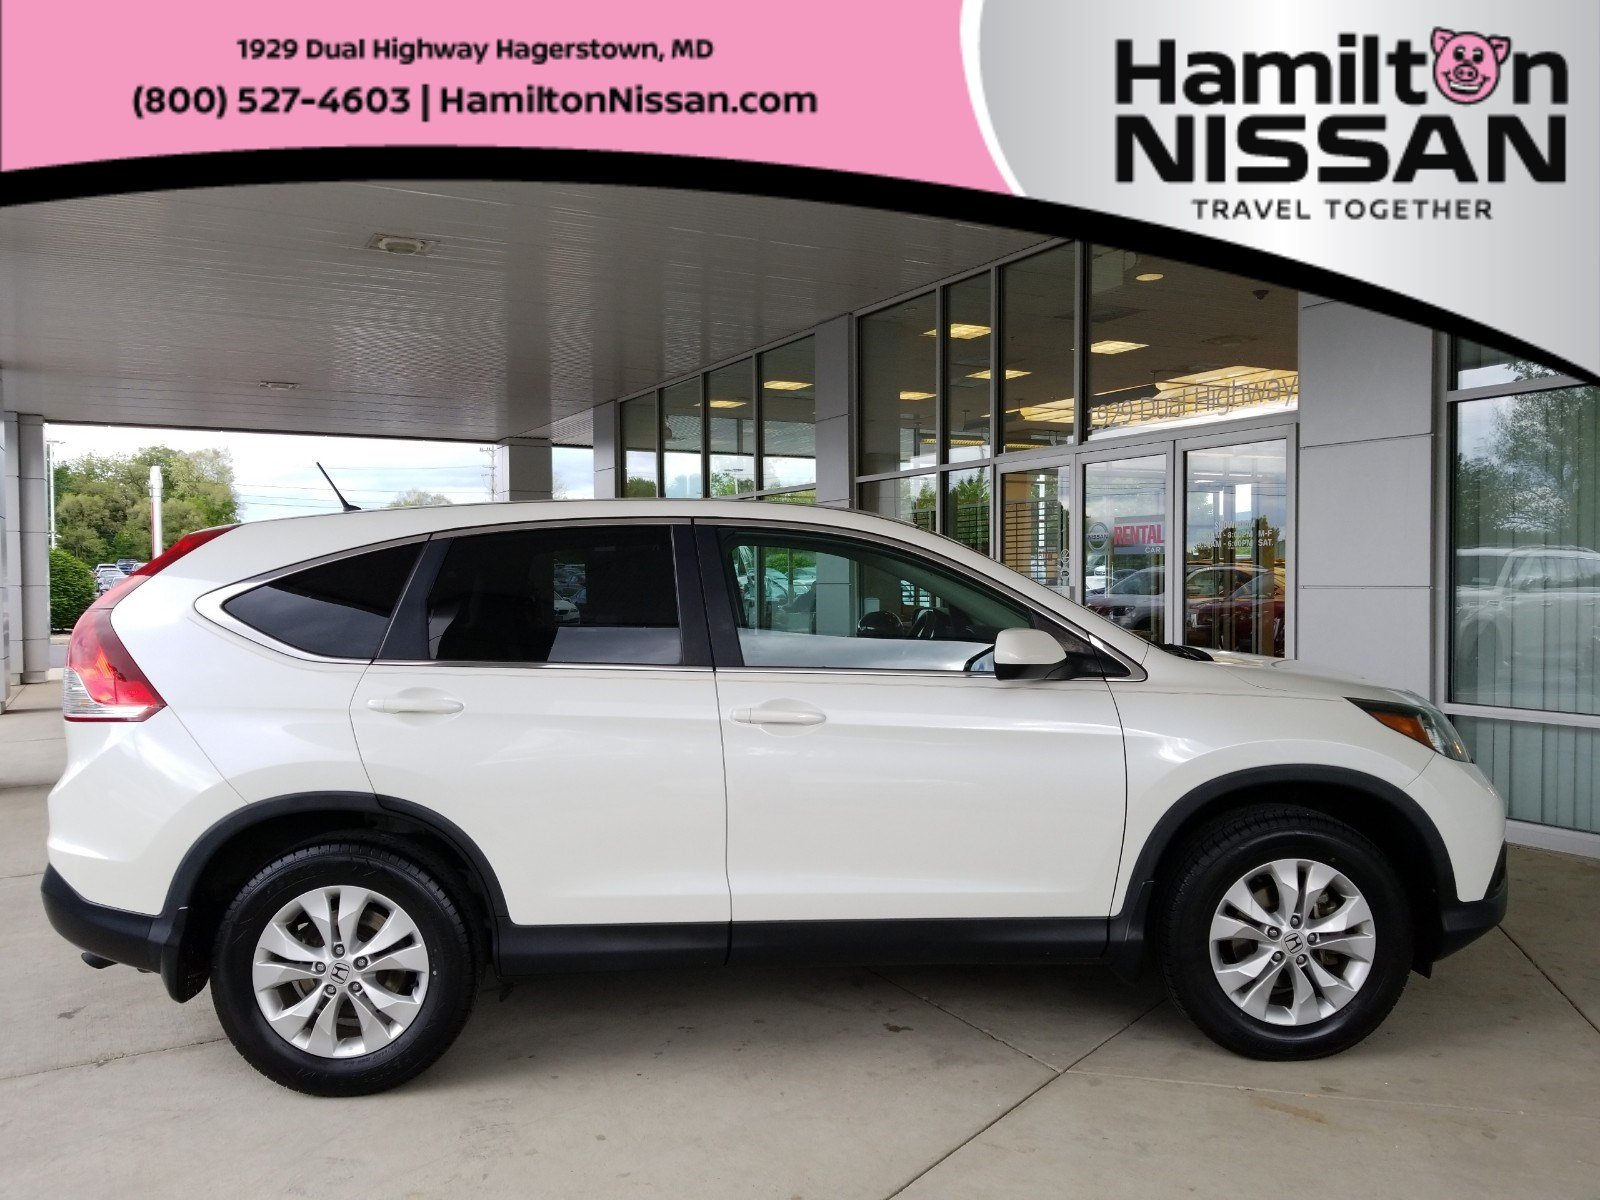 2014 Honda Crv For Sale >> Used 2014 Honda Cr V Ex Awd For Sale In Hagerstown Md